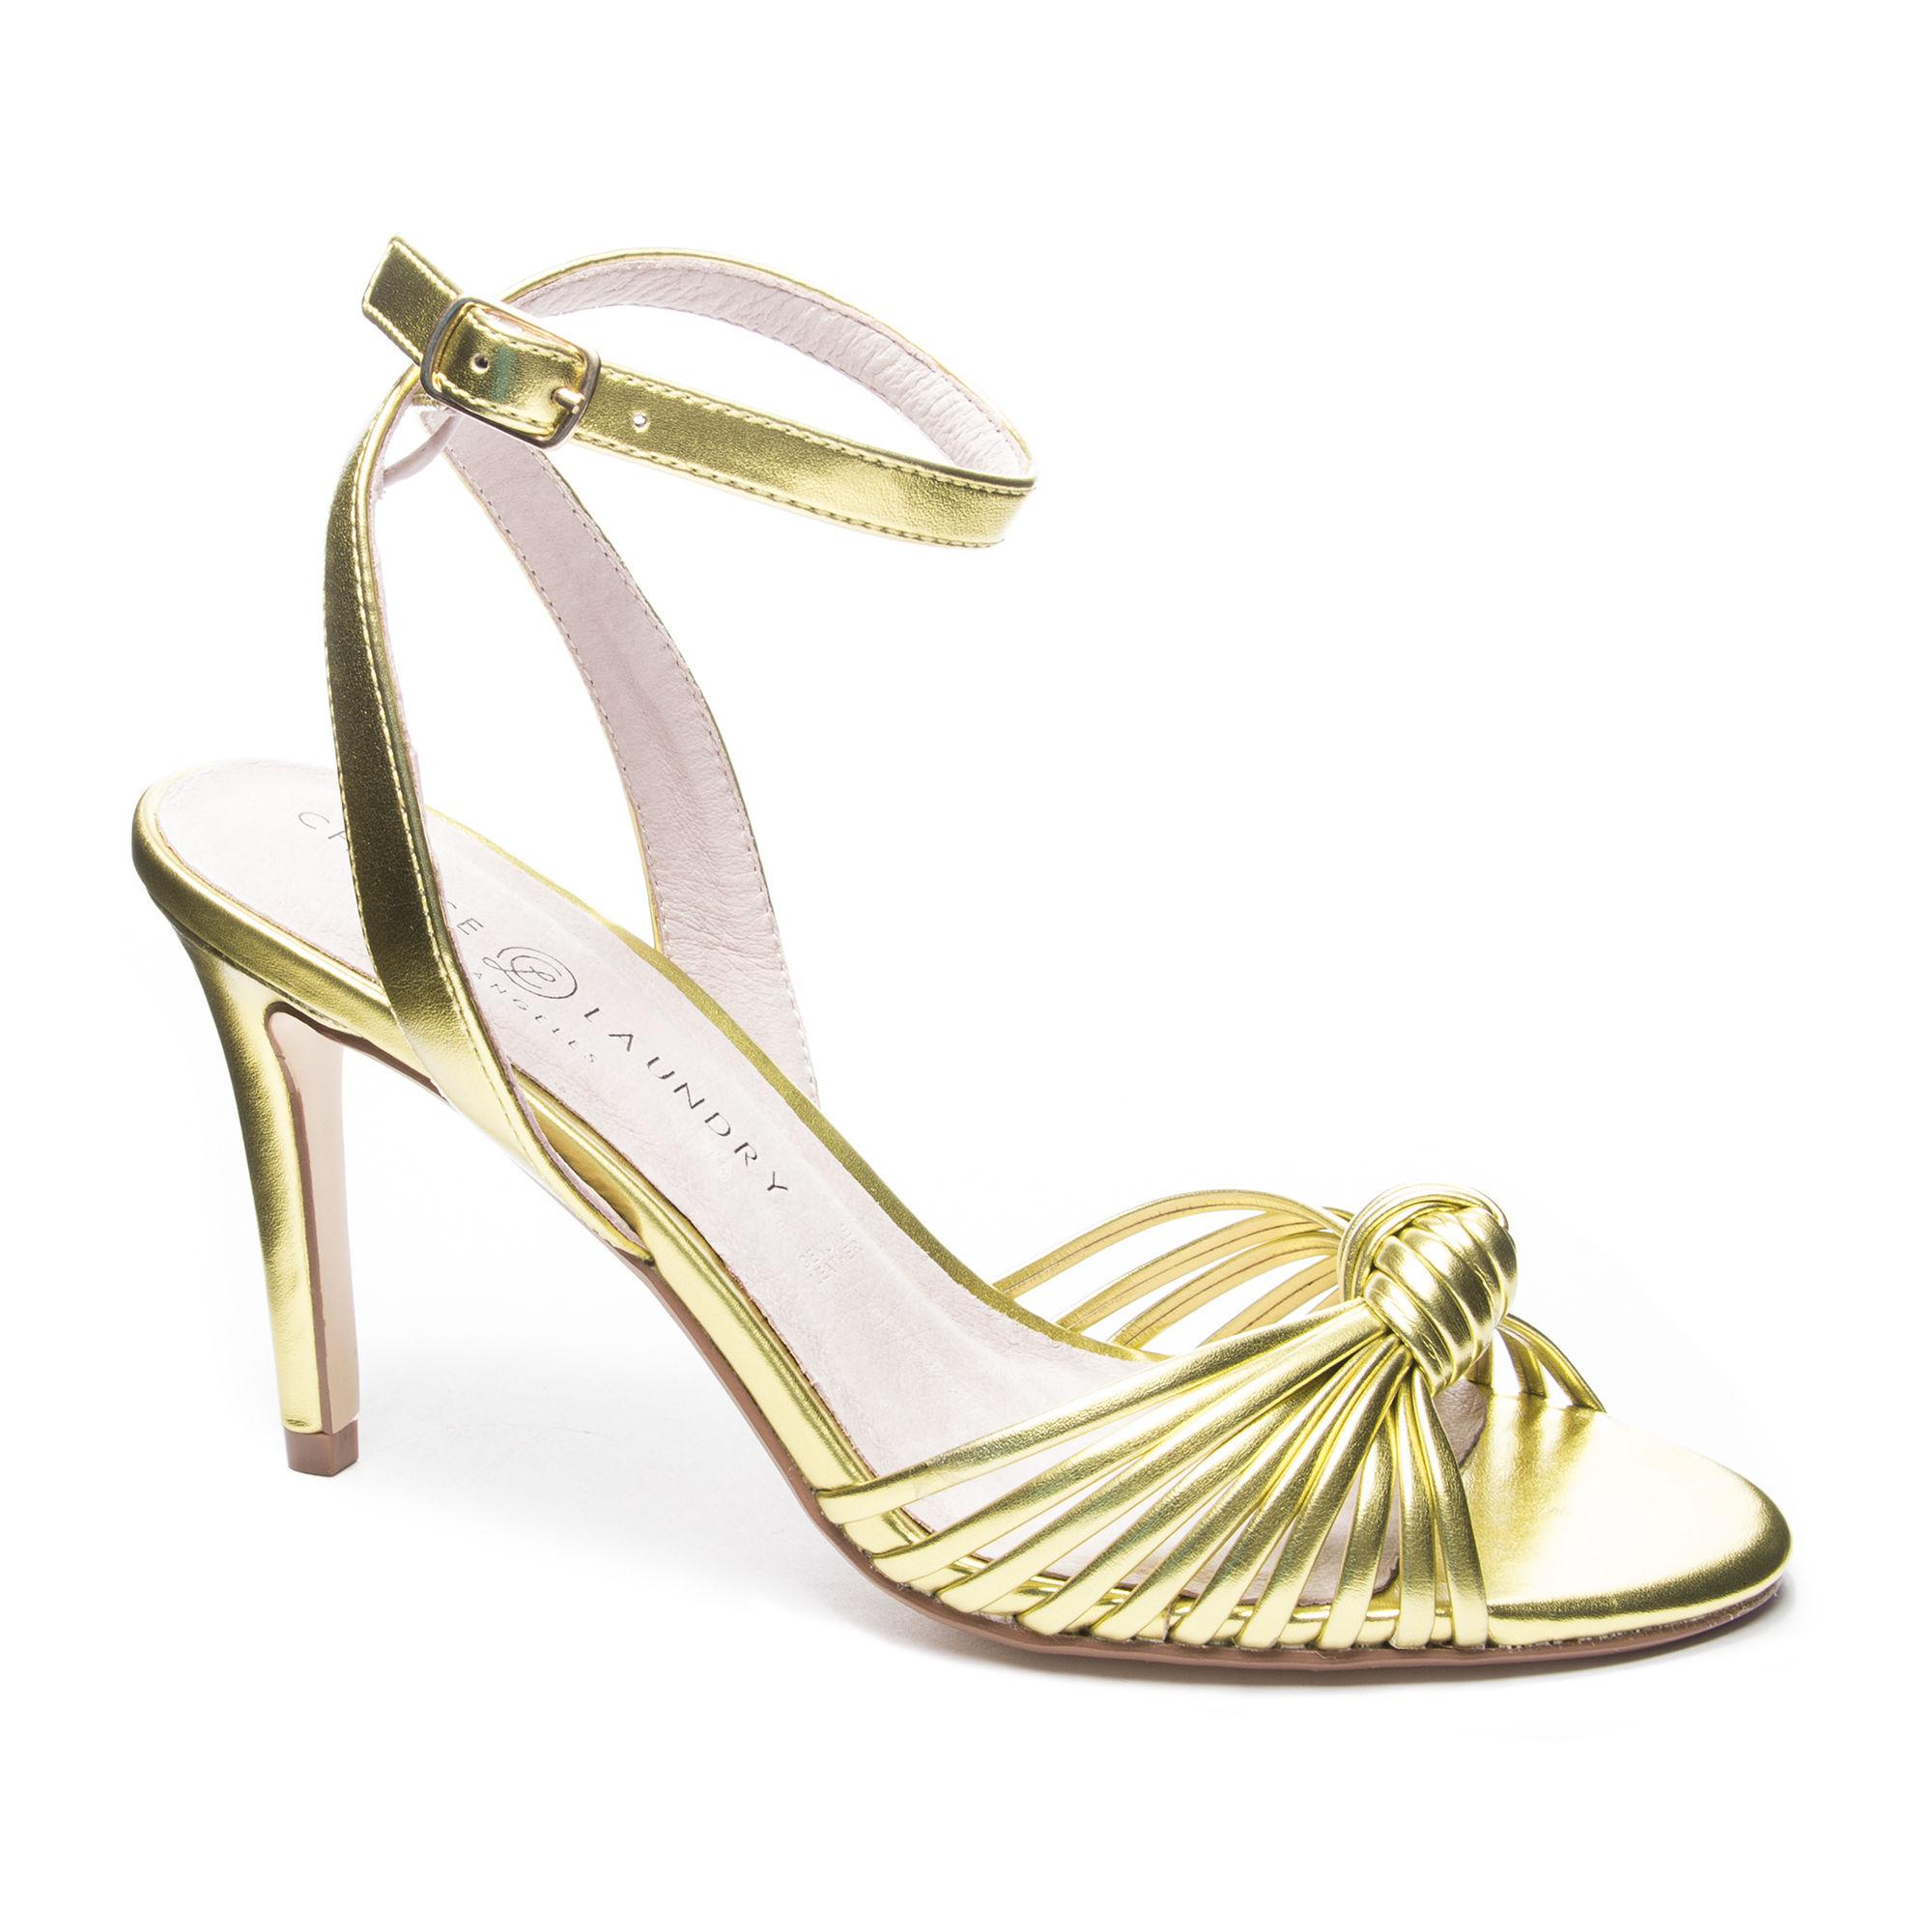 cc2cc31a6a45 Lyst - Chinese Laundry Selina Ankle Strap Sandal in Metallic